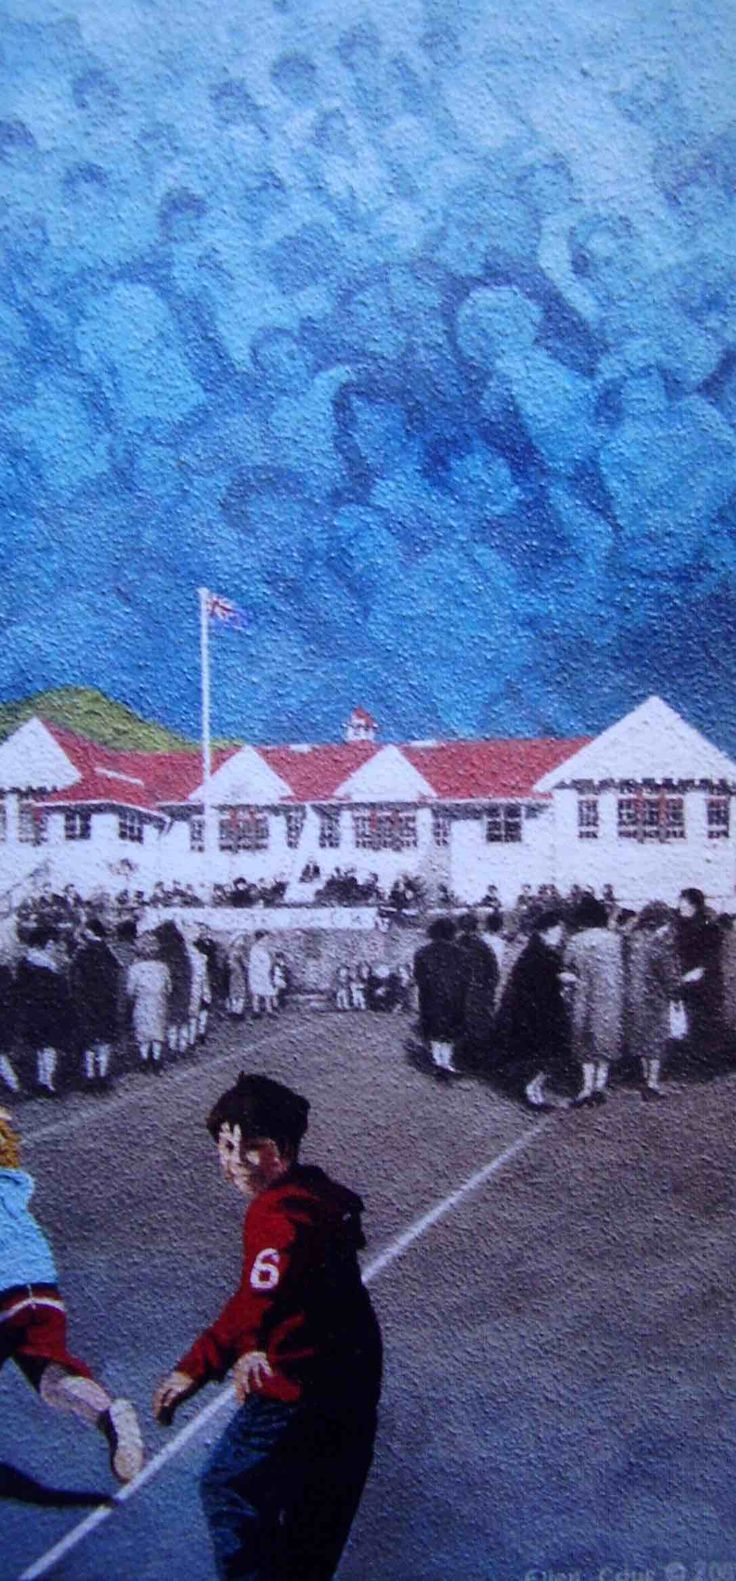 """Commission. """"Welcome Back"""" Oil on Board, 60cm x 29cm, made for Berhampore School's Centenary celebrations, 2005."""